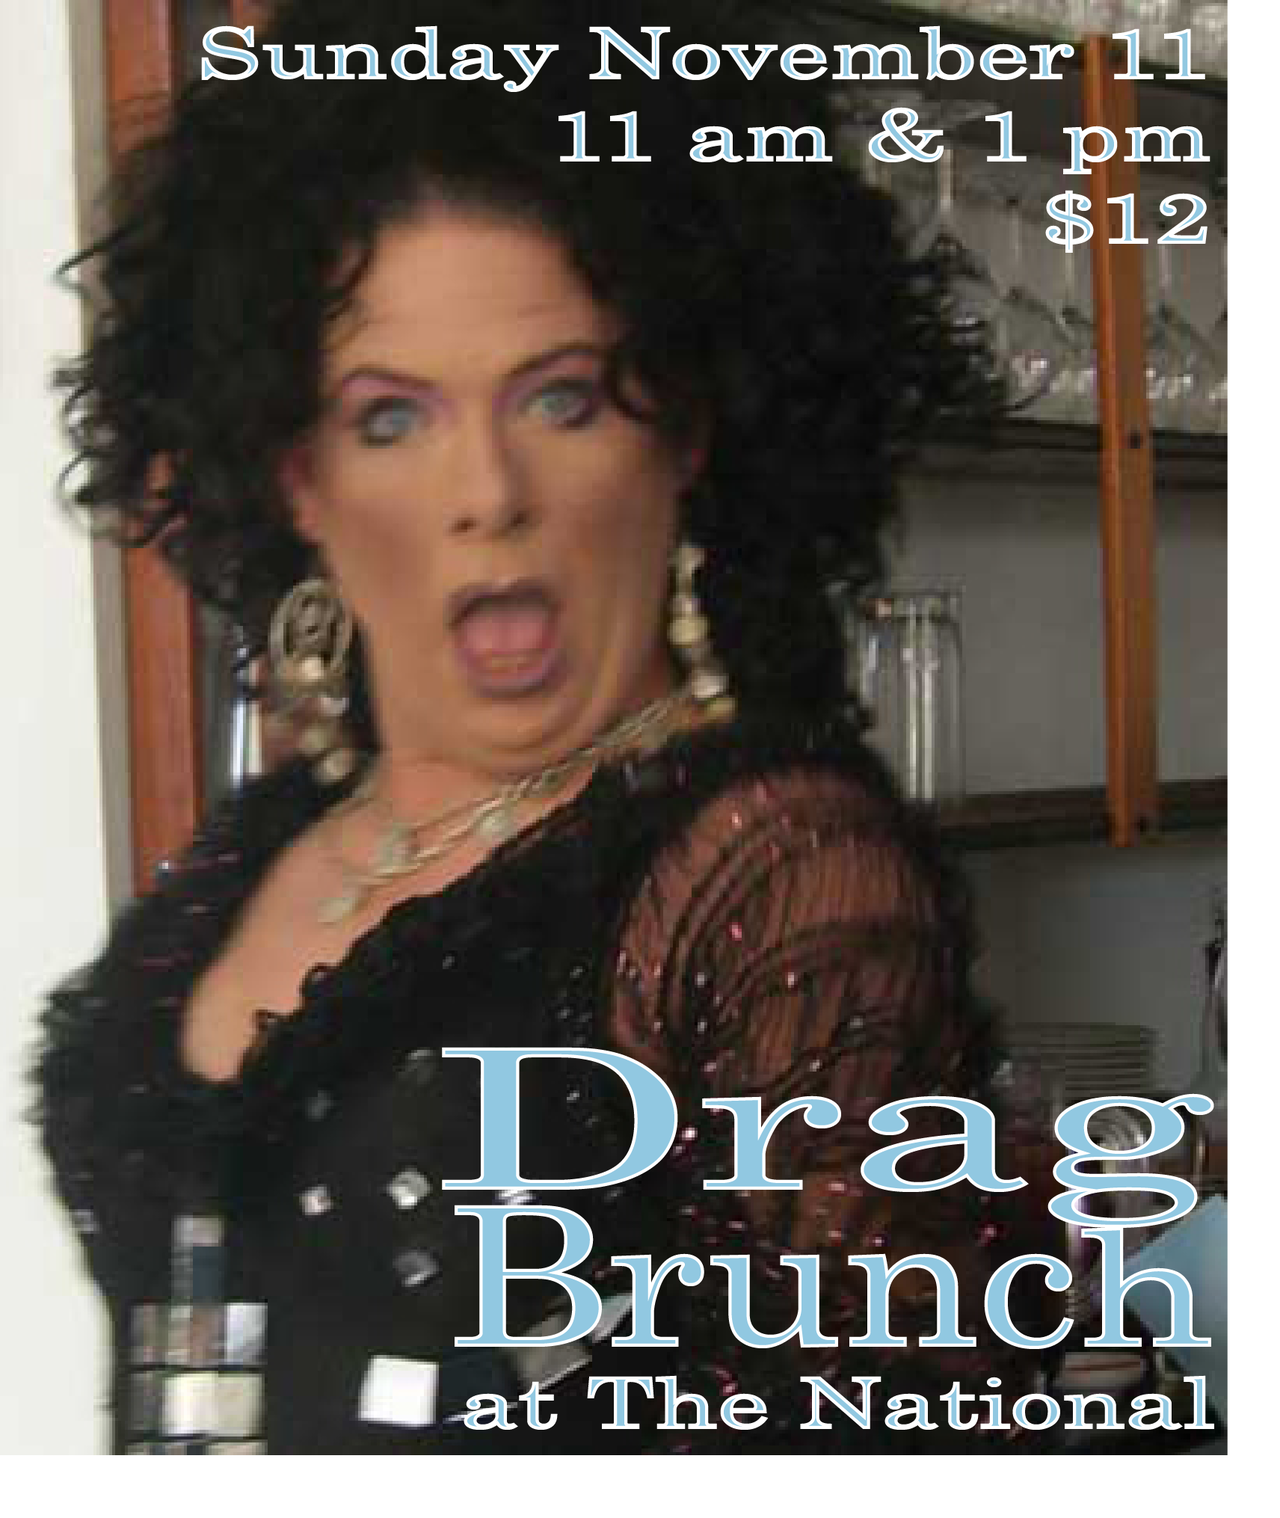 Bois and Grrrls, Boybutante Athens is staging the cutest coup at The National this Sunday!  Come out as your favorite local area drag performers warm your hearts and The National fills your stomach.    Yes, it's Drag Brunch!        Sunday, November 11  at The National  seatings at 11 am & 1 pm  reservations required  $12 per person  benefitting AIDS Athens/Boybutante